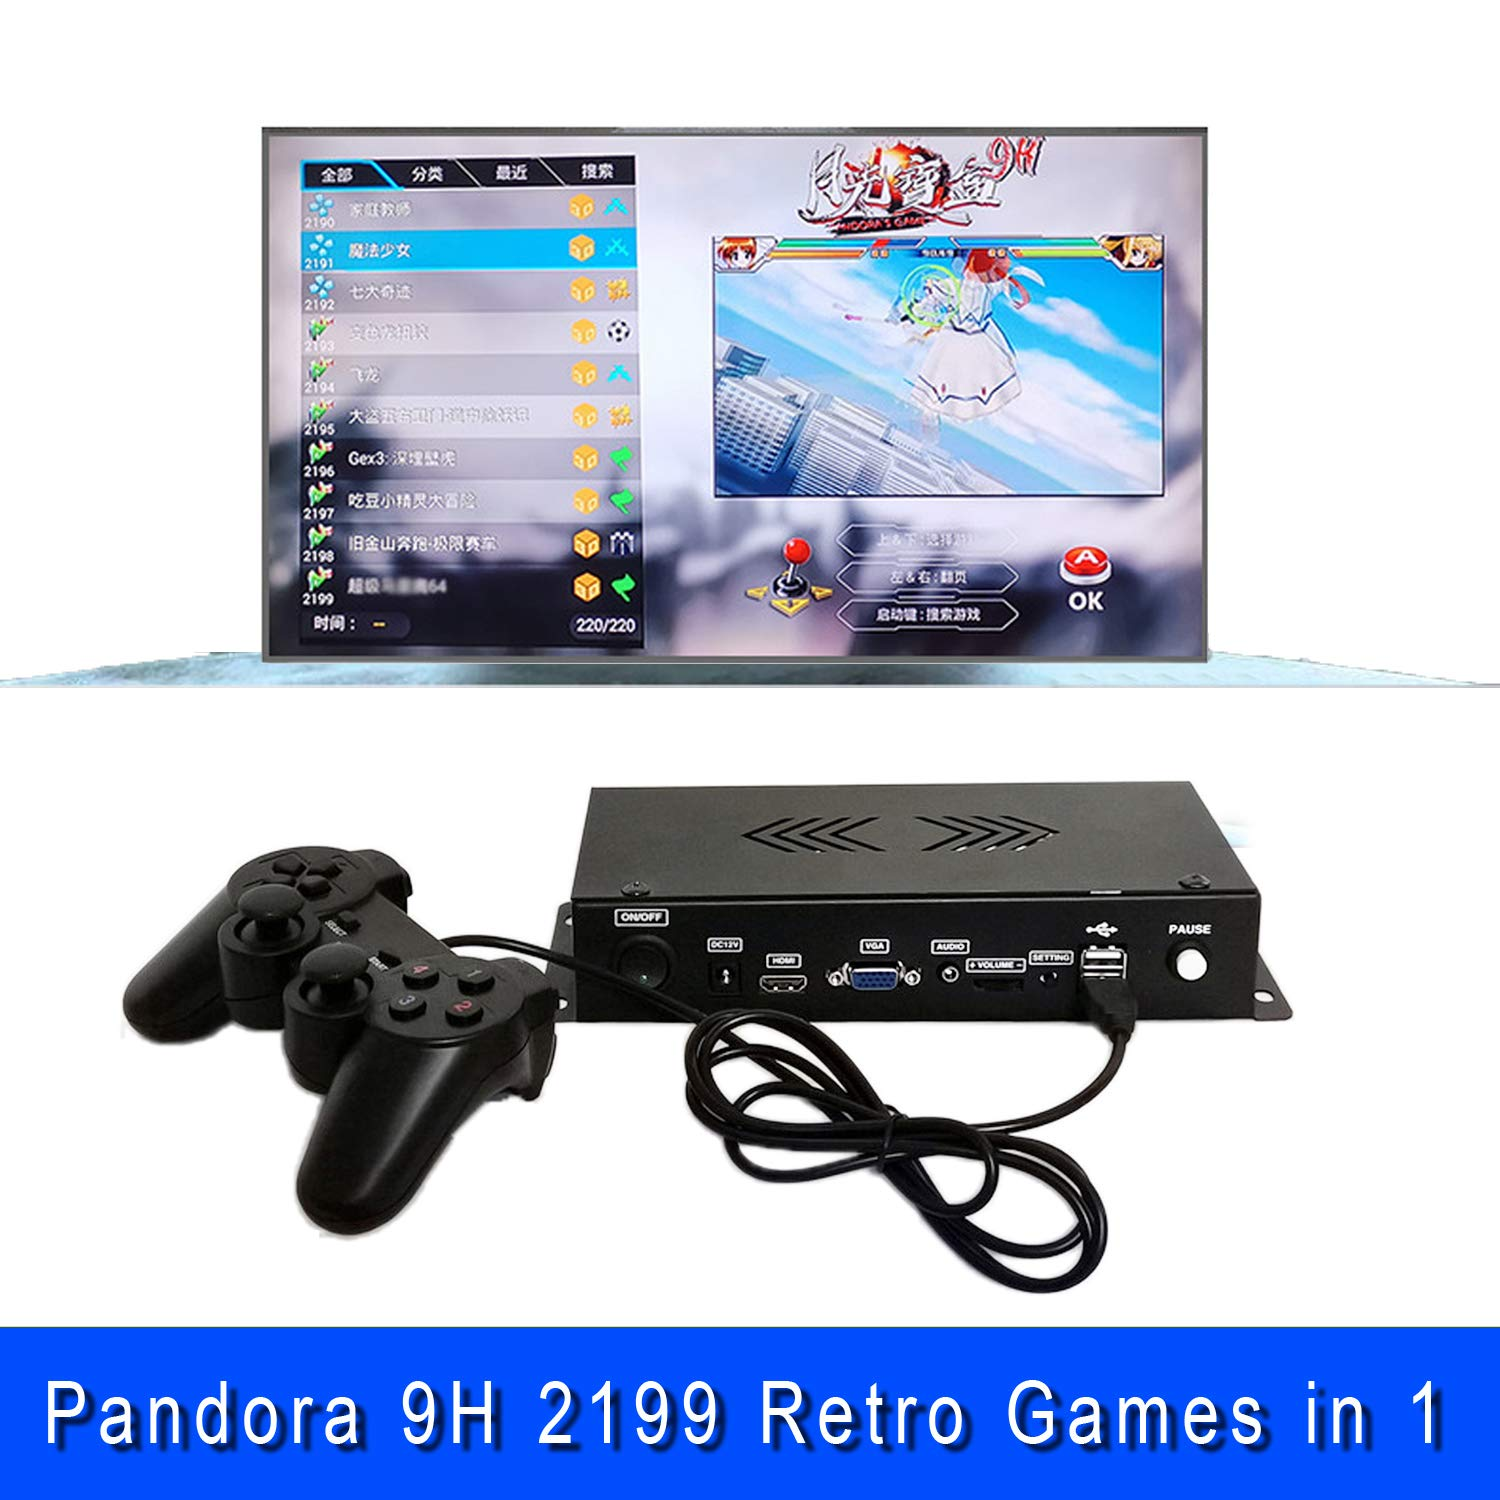 New DIY Pandora 9H Retro Arcade Game Machine 2199 in 1 Metal Box HD Home TV Game Machine Support 2-4 Mutil-Player Game with Gamepad by Angkel (Image #1)